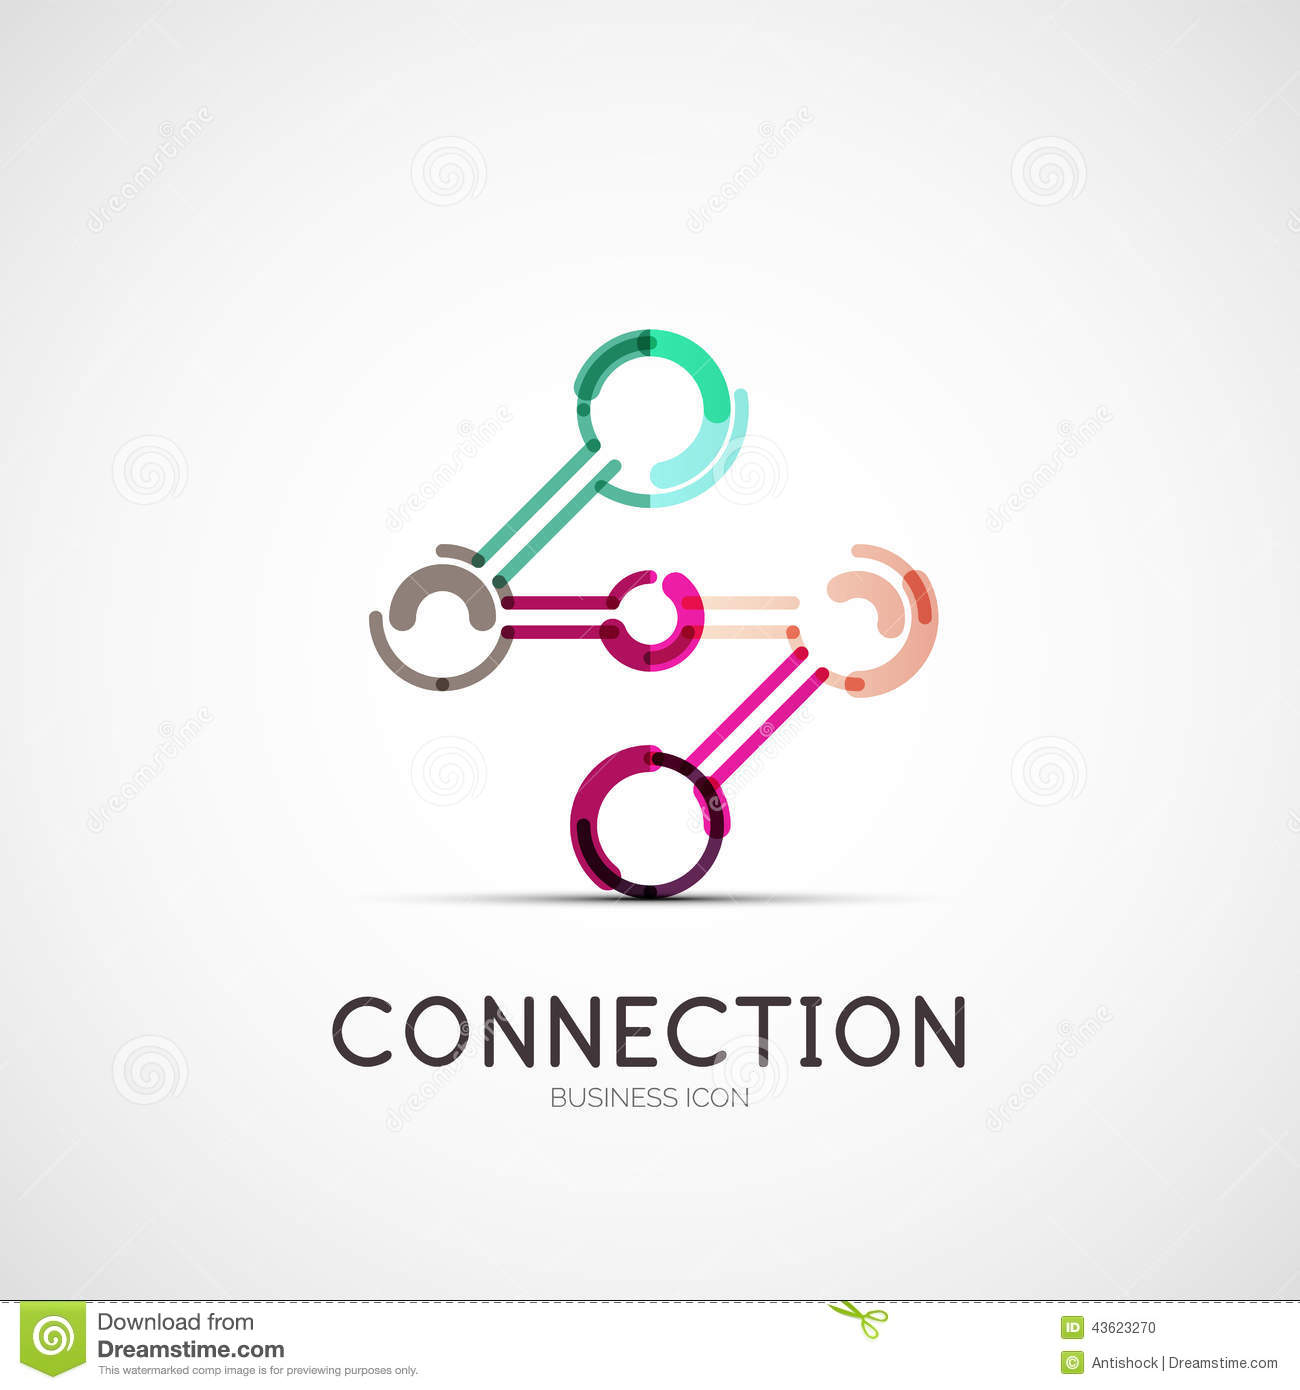 Connection Pictures to Pin on Pinterest - PinsDaddy